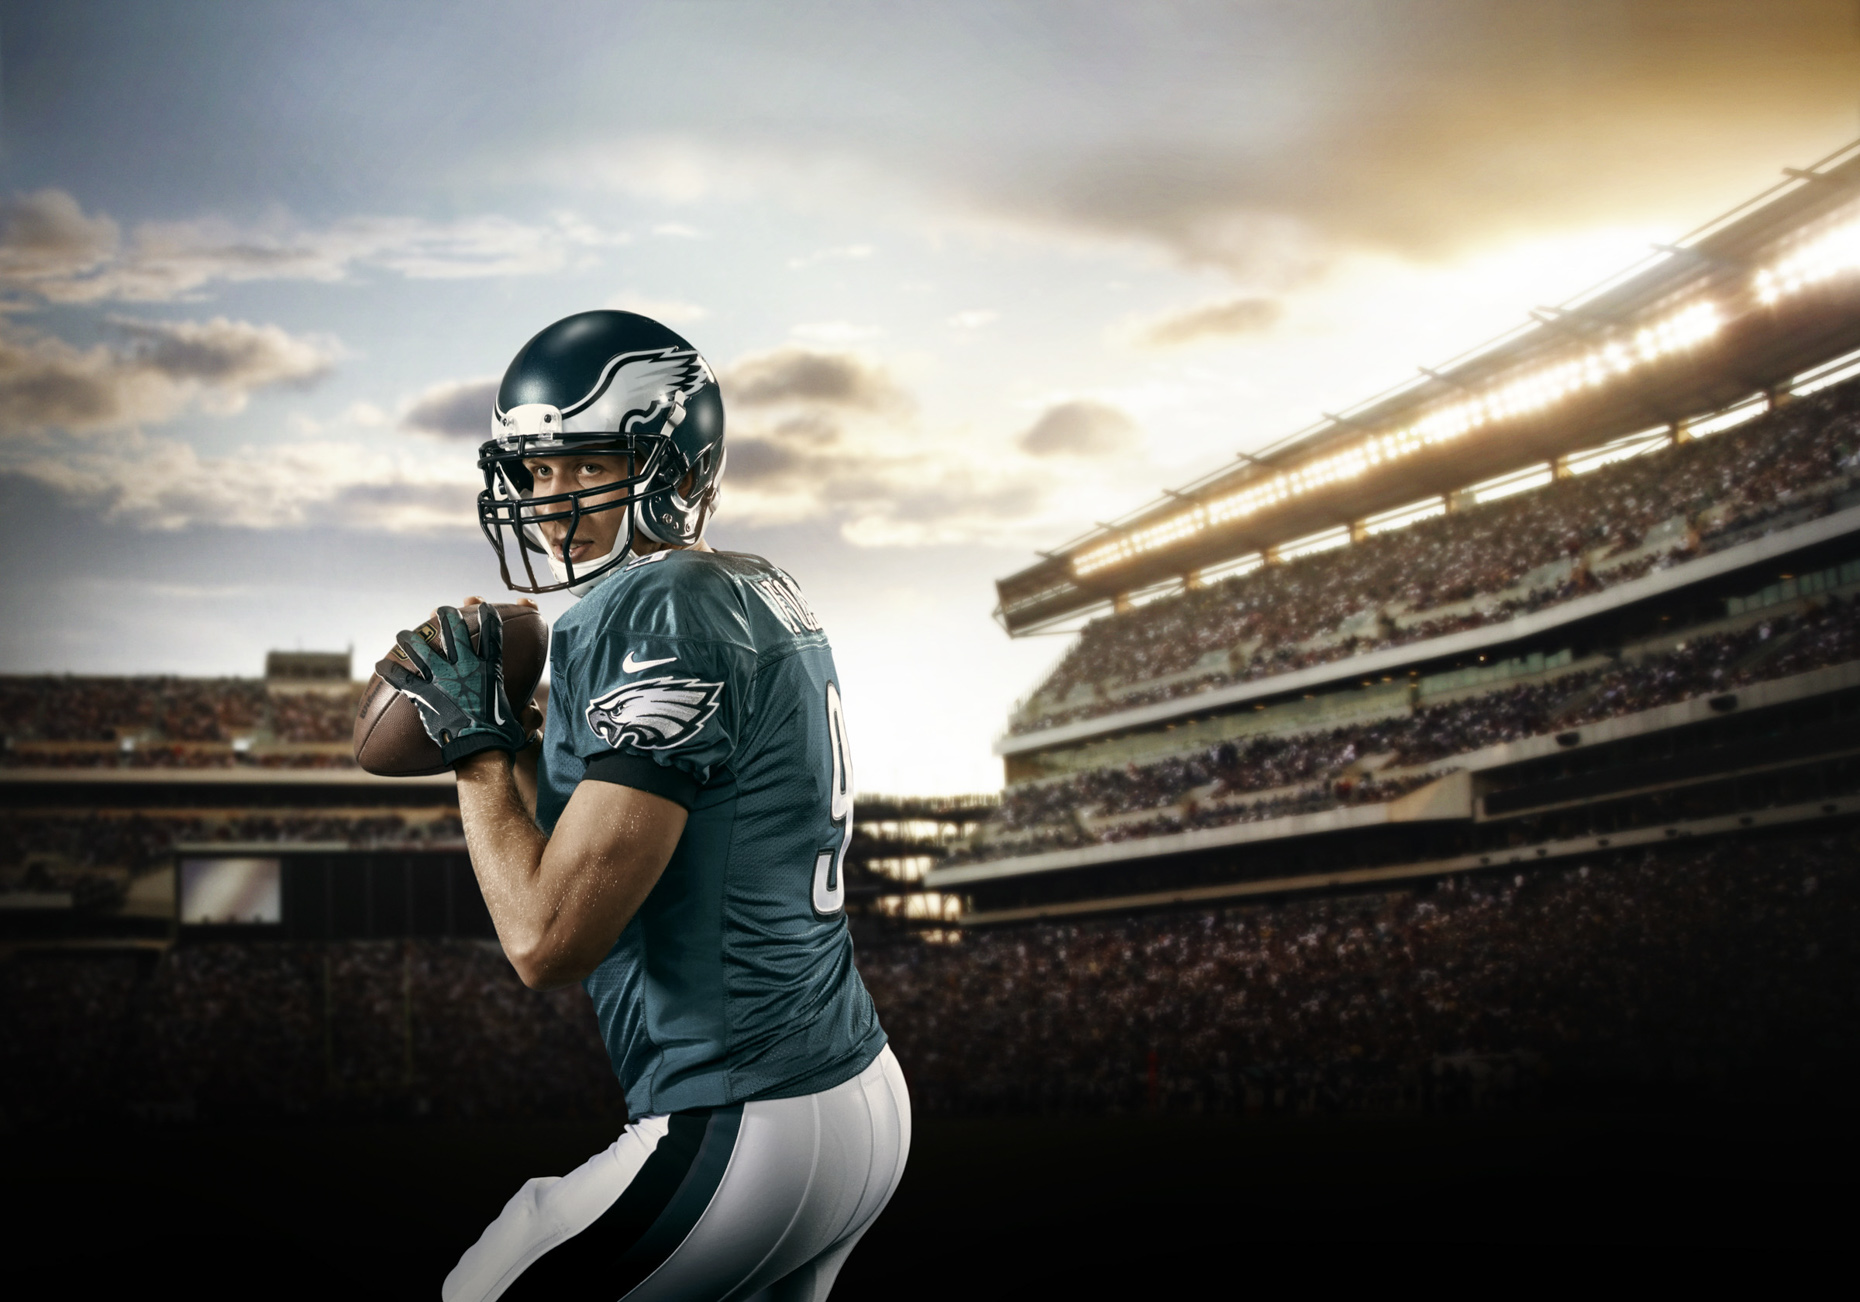 Nick Foles is an American football quarterback for the Philadelphia Eagles of the National Football League.